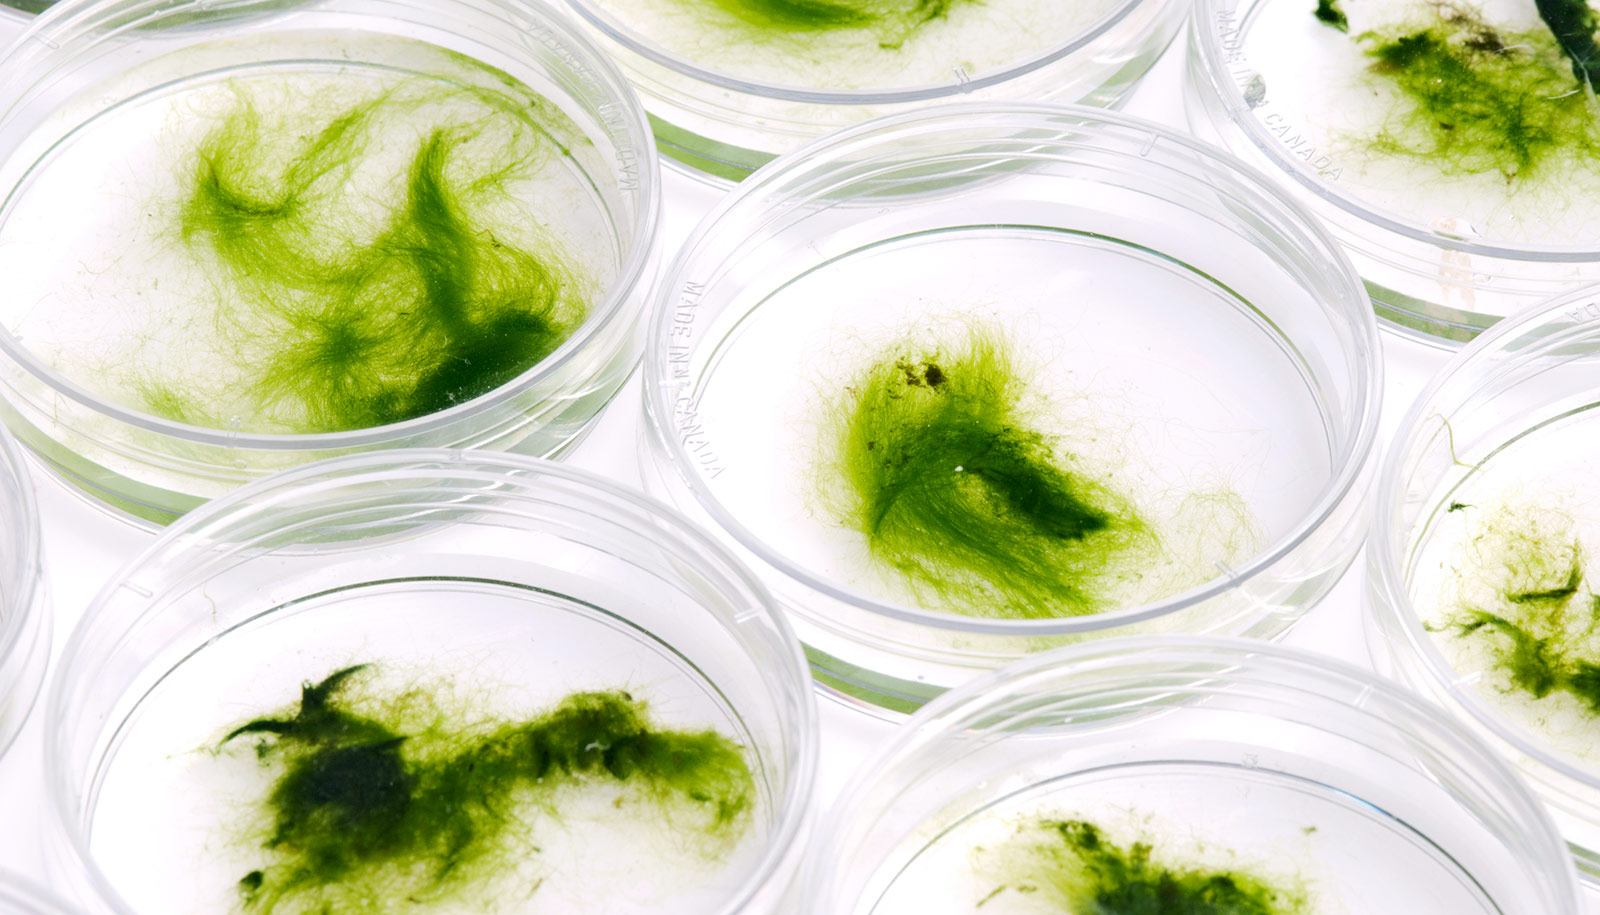 Sea sludge' could solve current problems with biofuels